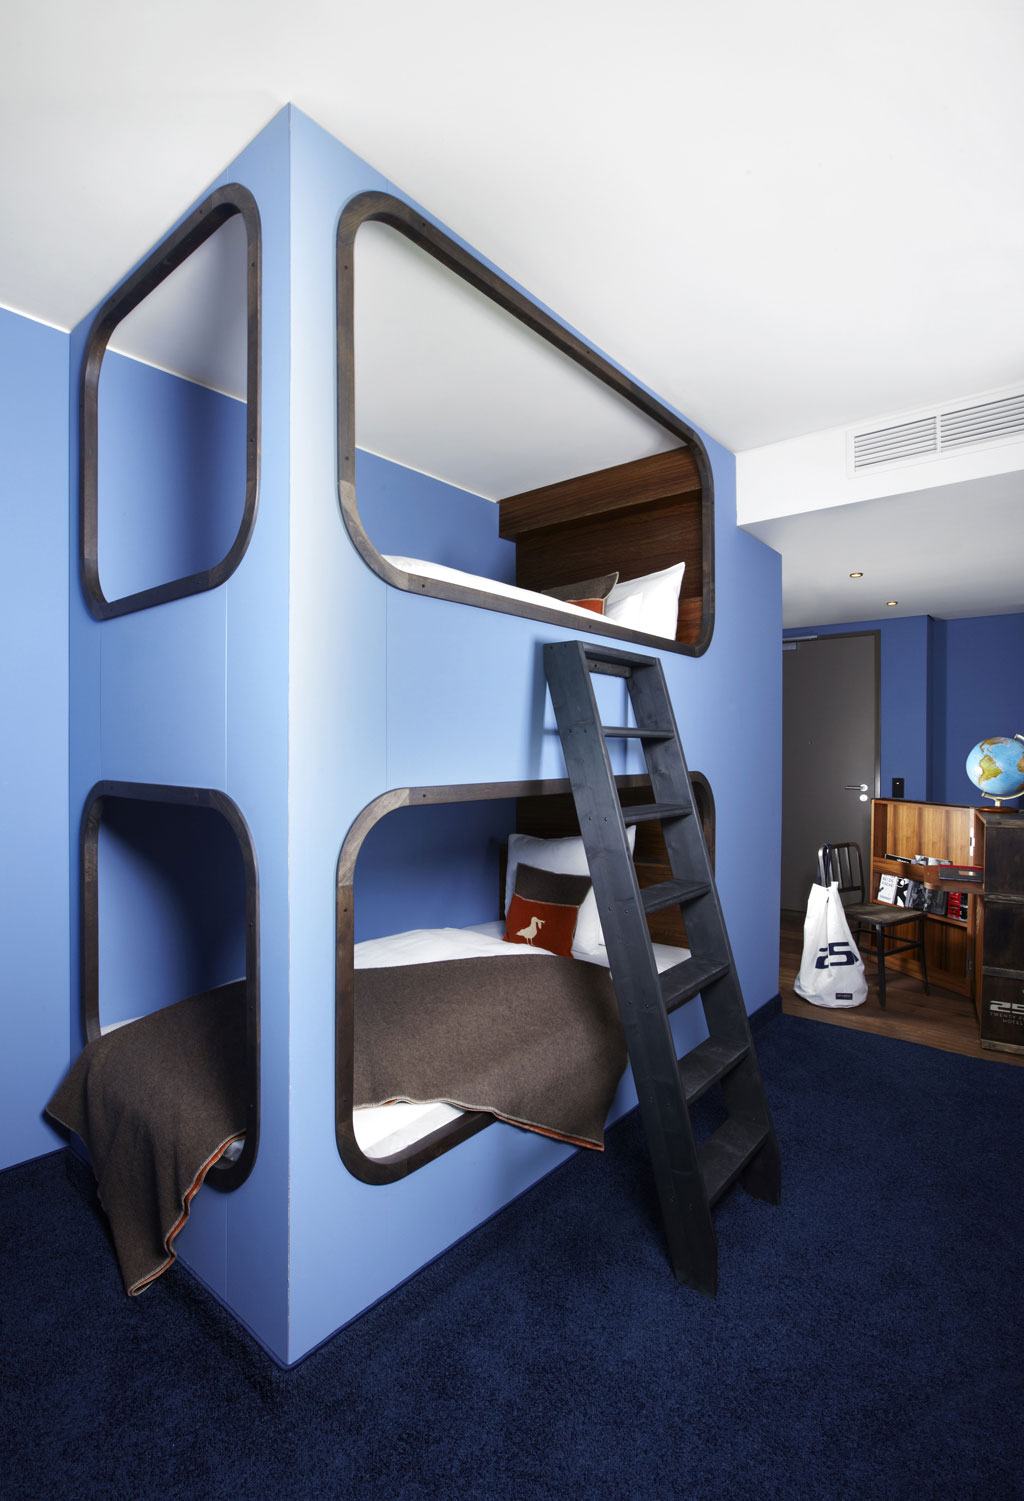 25hours hotel hamburg hafencity trips4kids. Black Bedroom Furniture Sets. Home Design Ideas